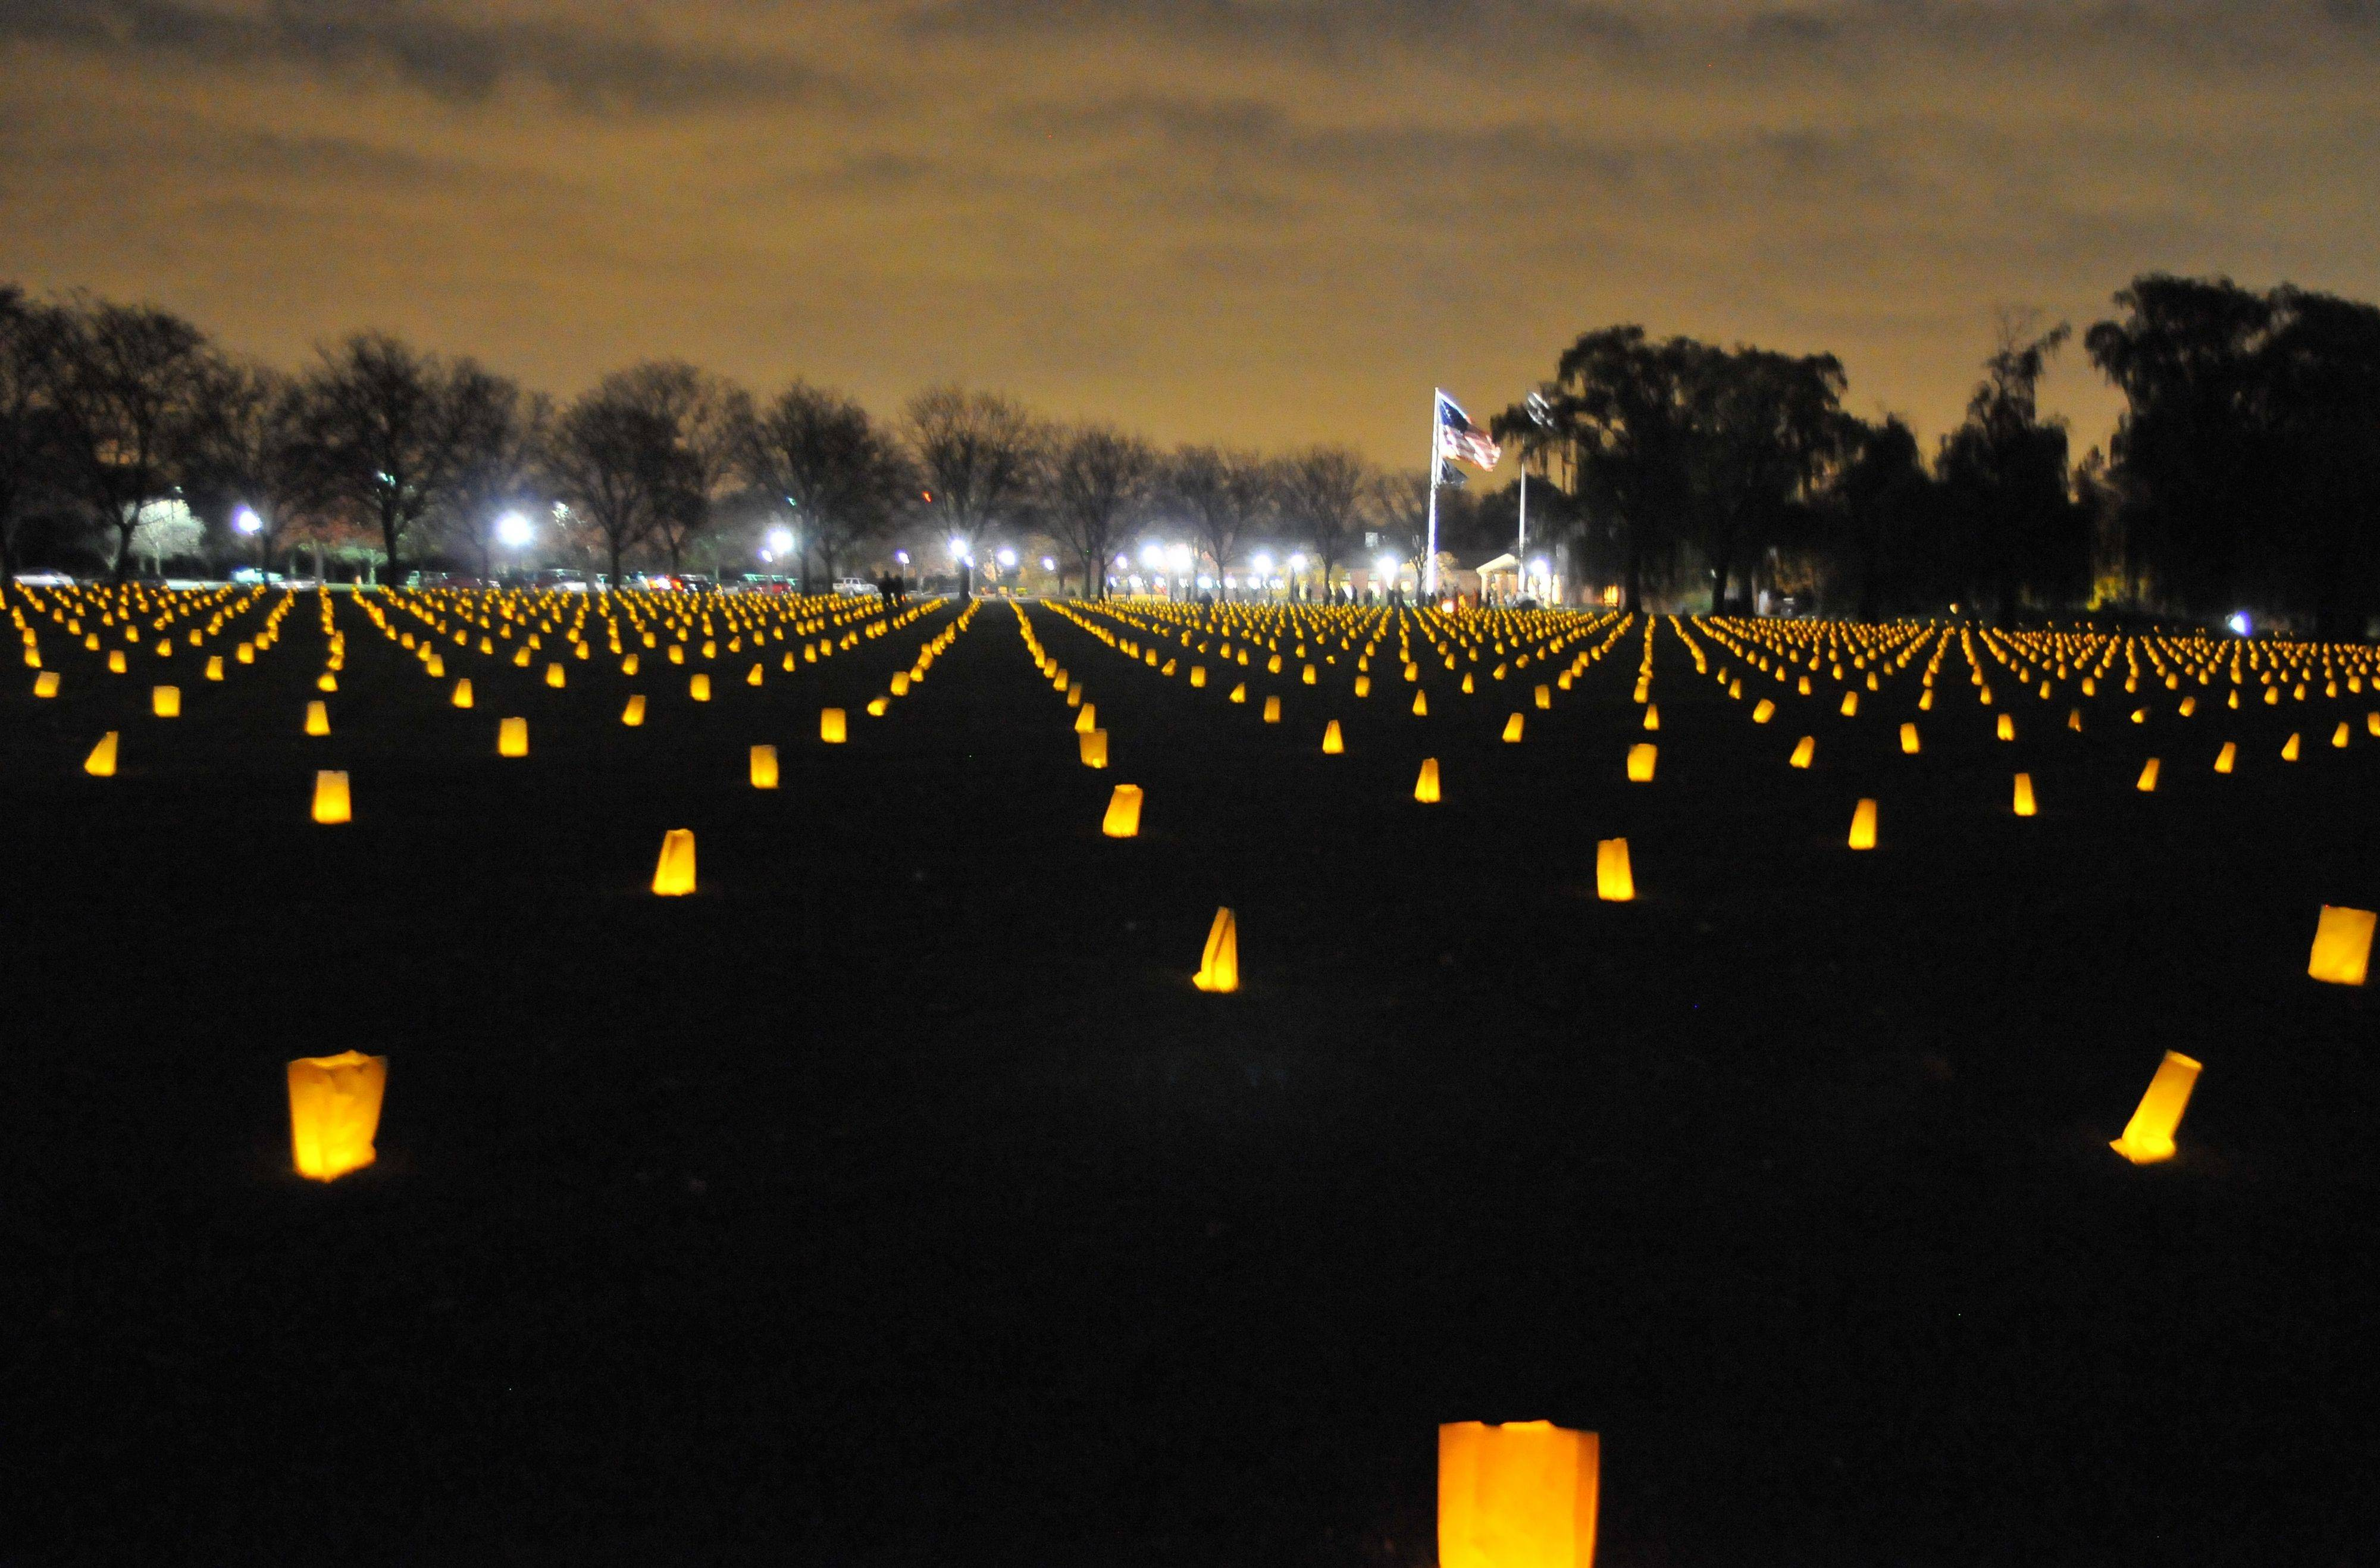 More than 2,000 candles in honor of U.S. veterans will light up the night on Friday, Nov. 11, at Cantigny Park and the First Division Museum at the annual Luminary Tribute.